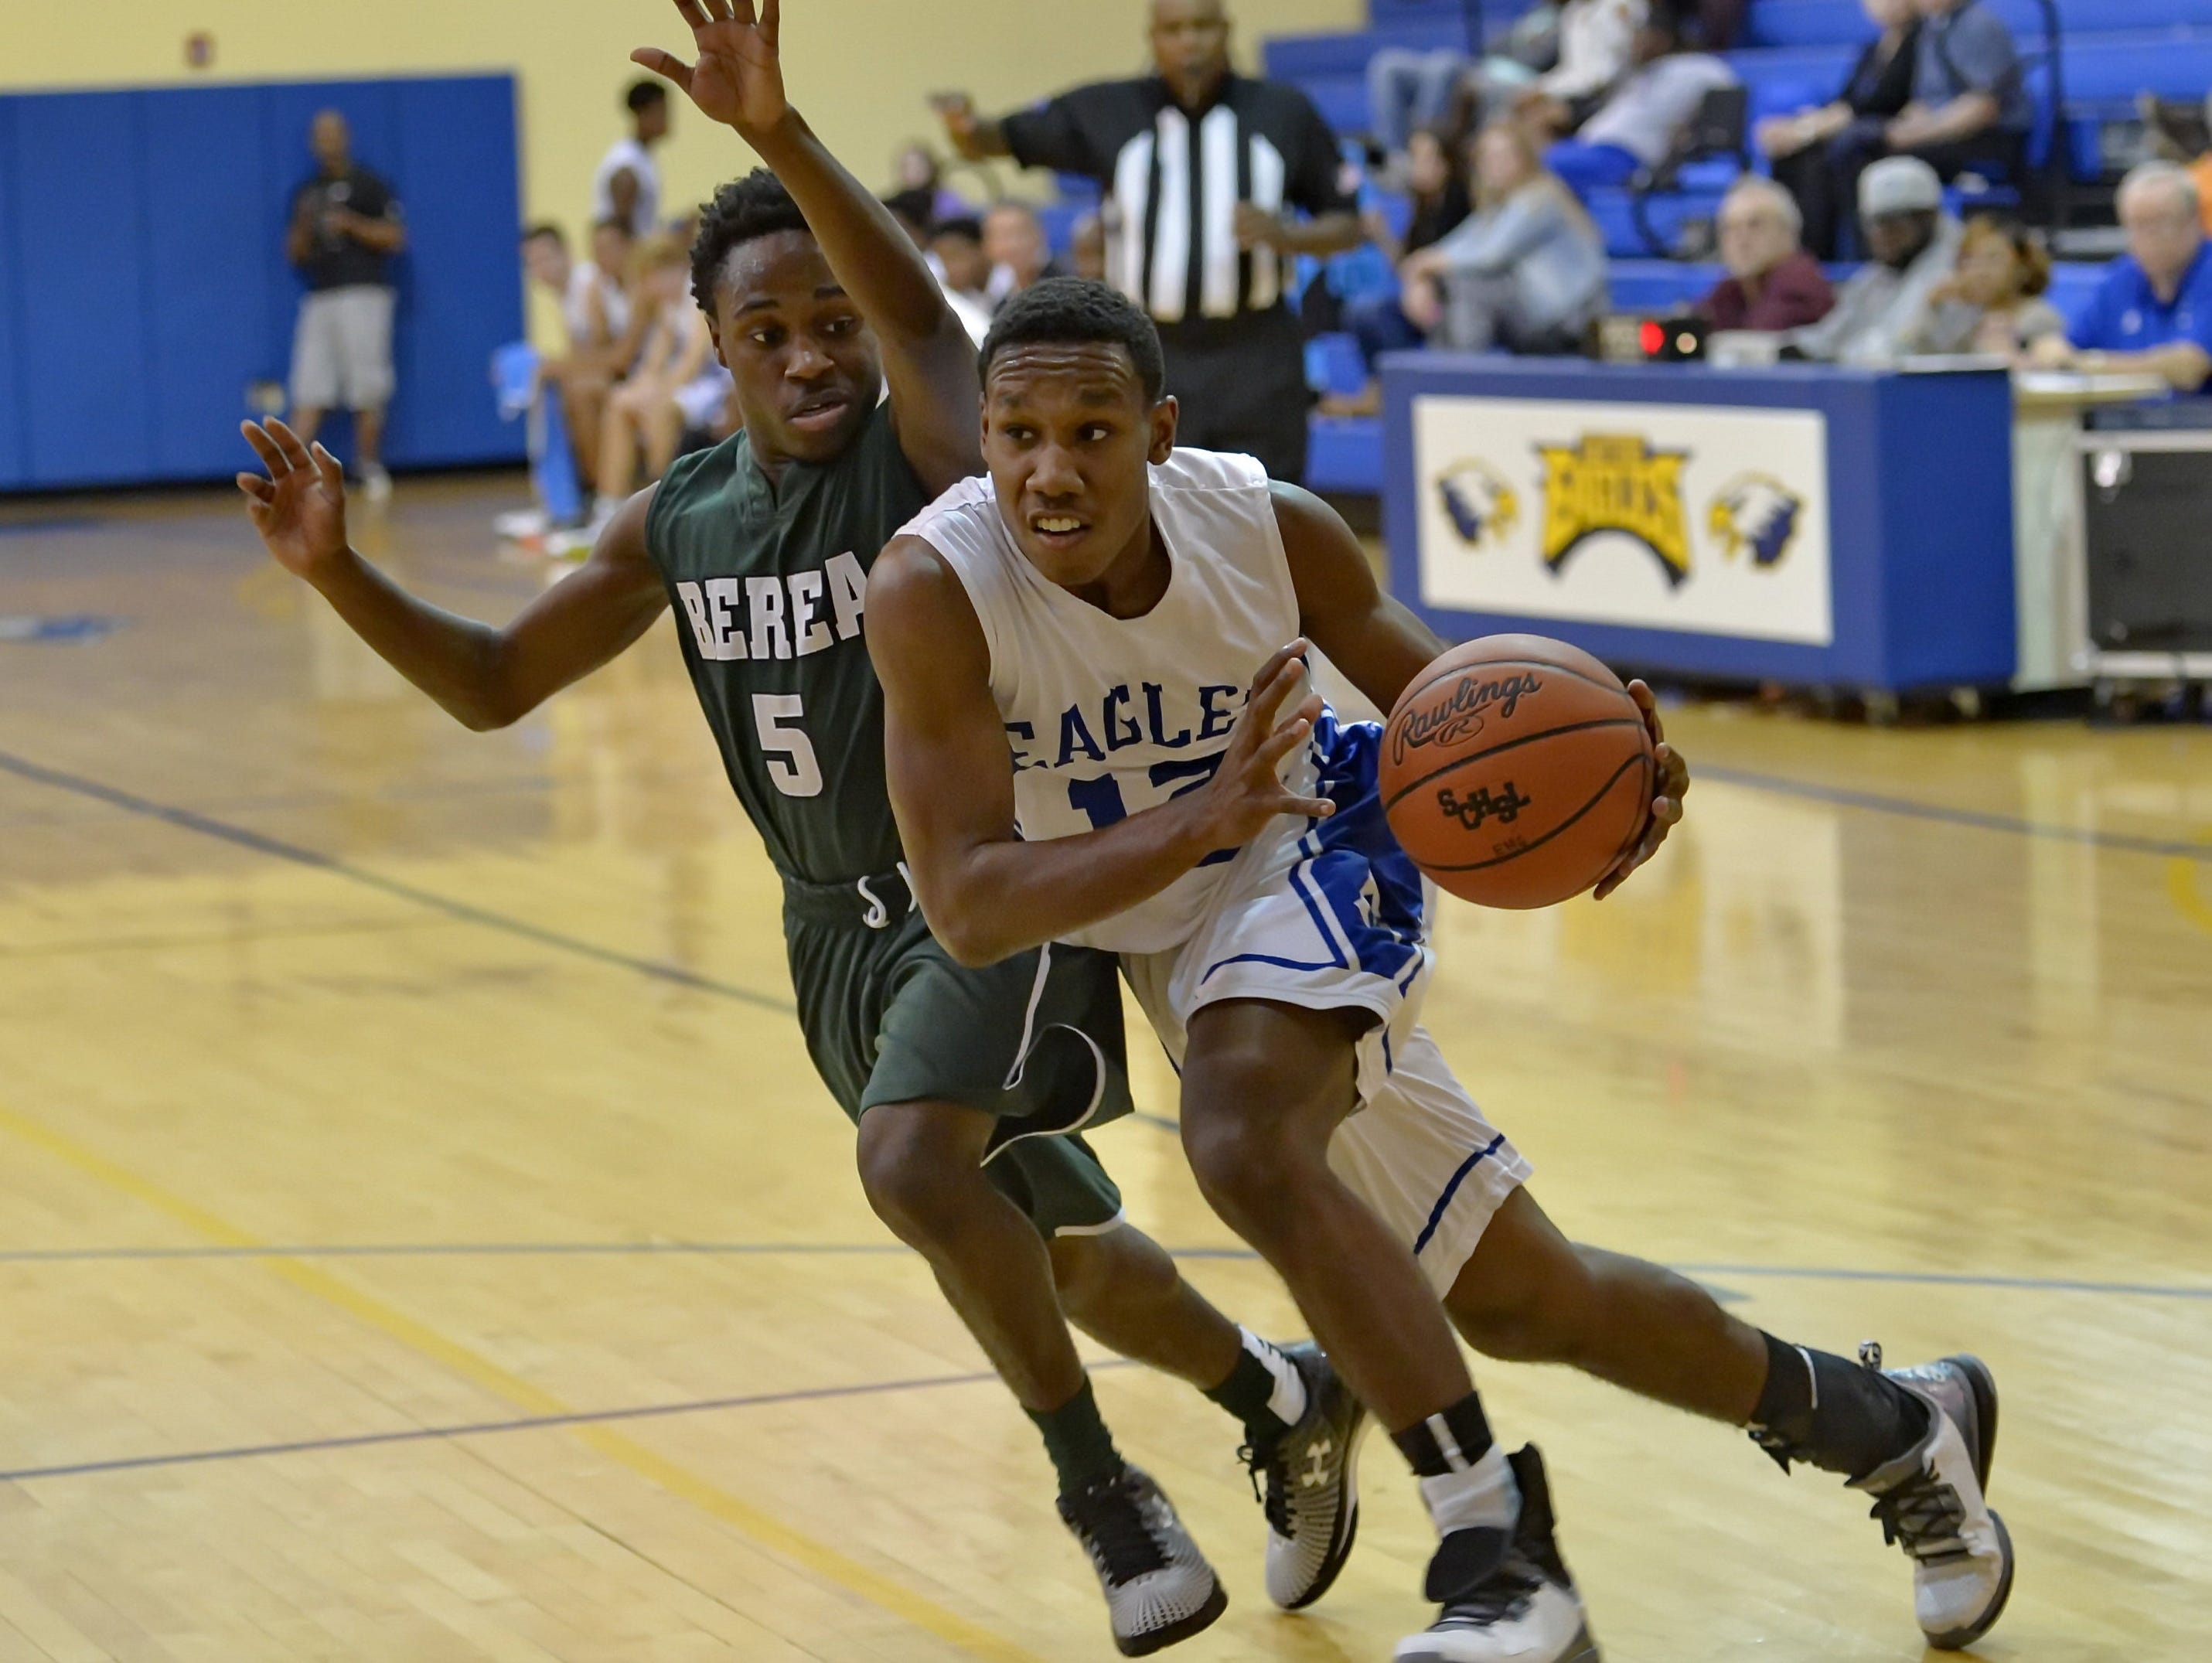 Eastside's Darius Foster drives down the lane while defended by Berea's Ta'mious Young during the Eagles' 65-62 win in the Greenville County Tip-Off Tournament championship game Wednesday at Eastside.